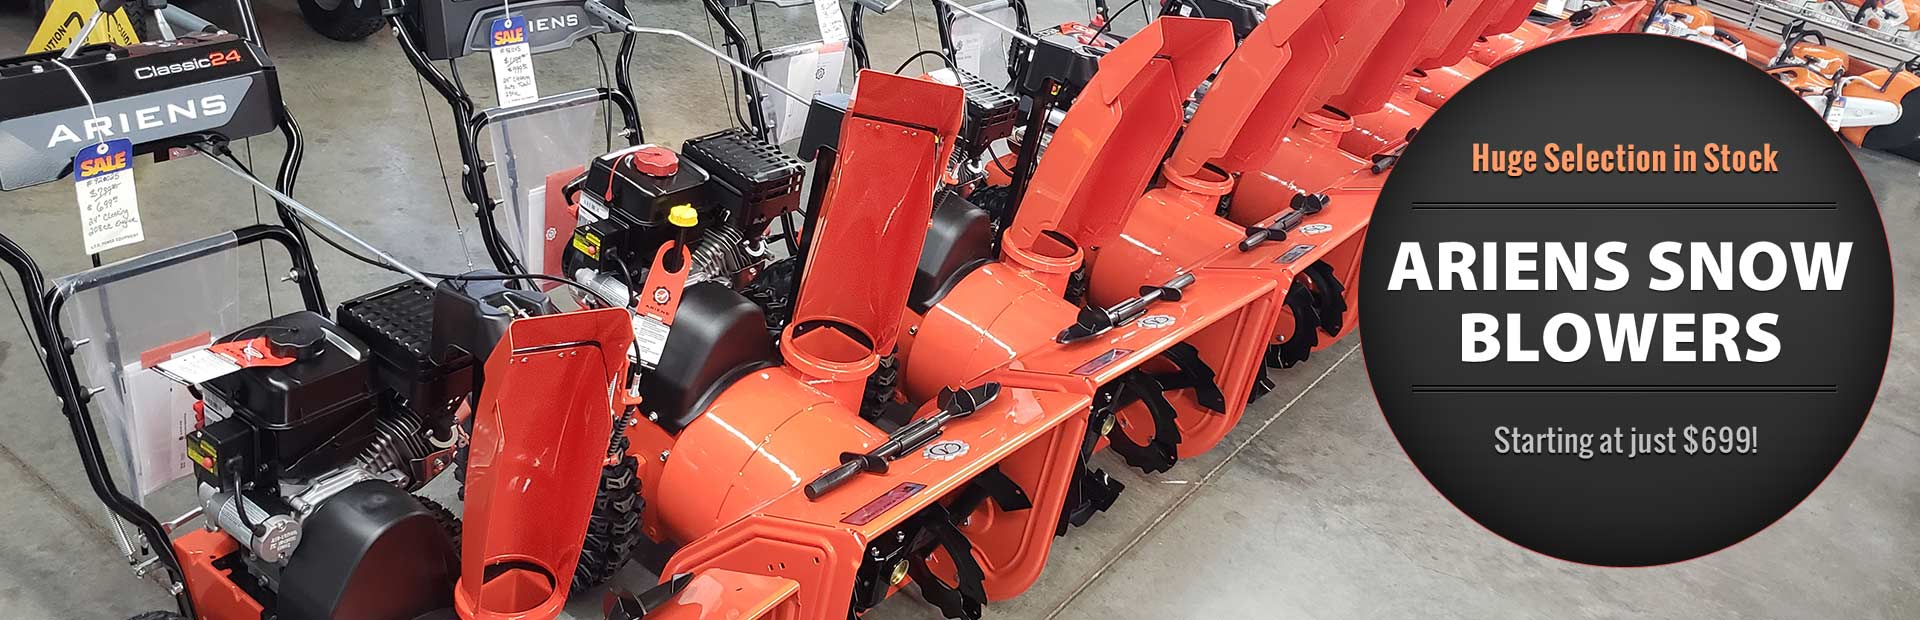 Huge Selection of Ariens Snow Blowers in Stock: Starting at just $699!